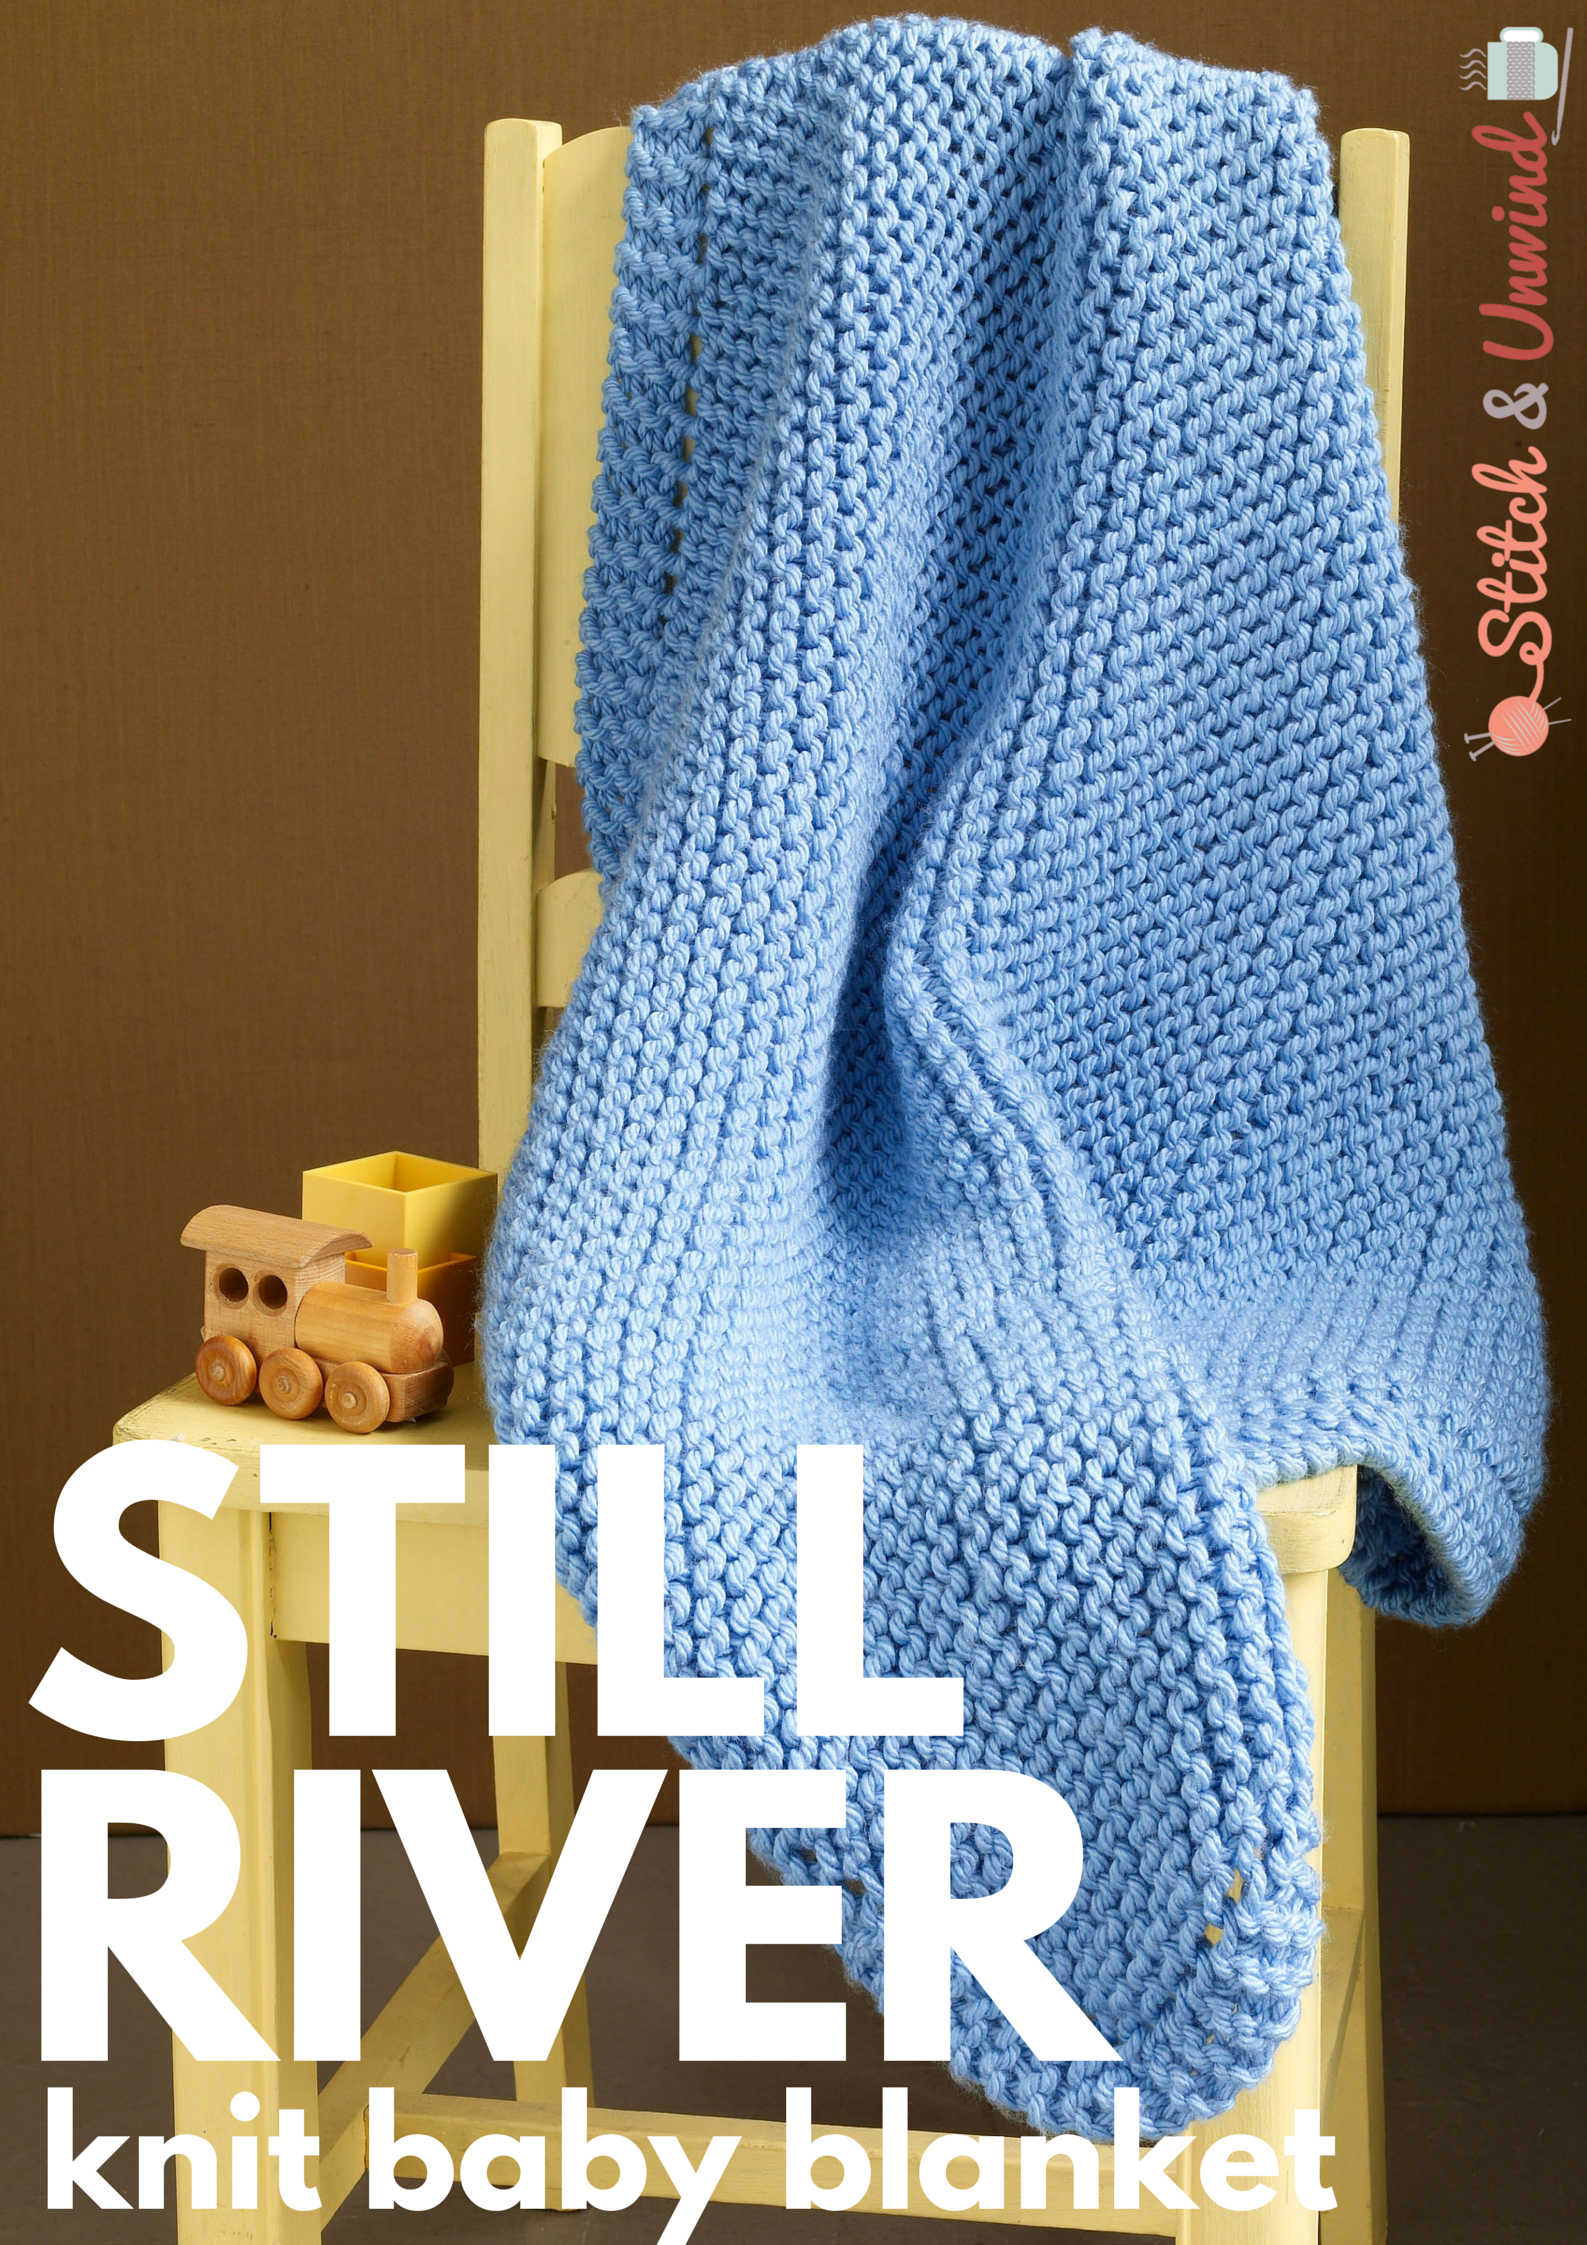 The Ultimate Baby Knit: Still River Baby Blanket - Stitch and Unwind